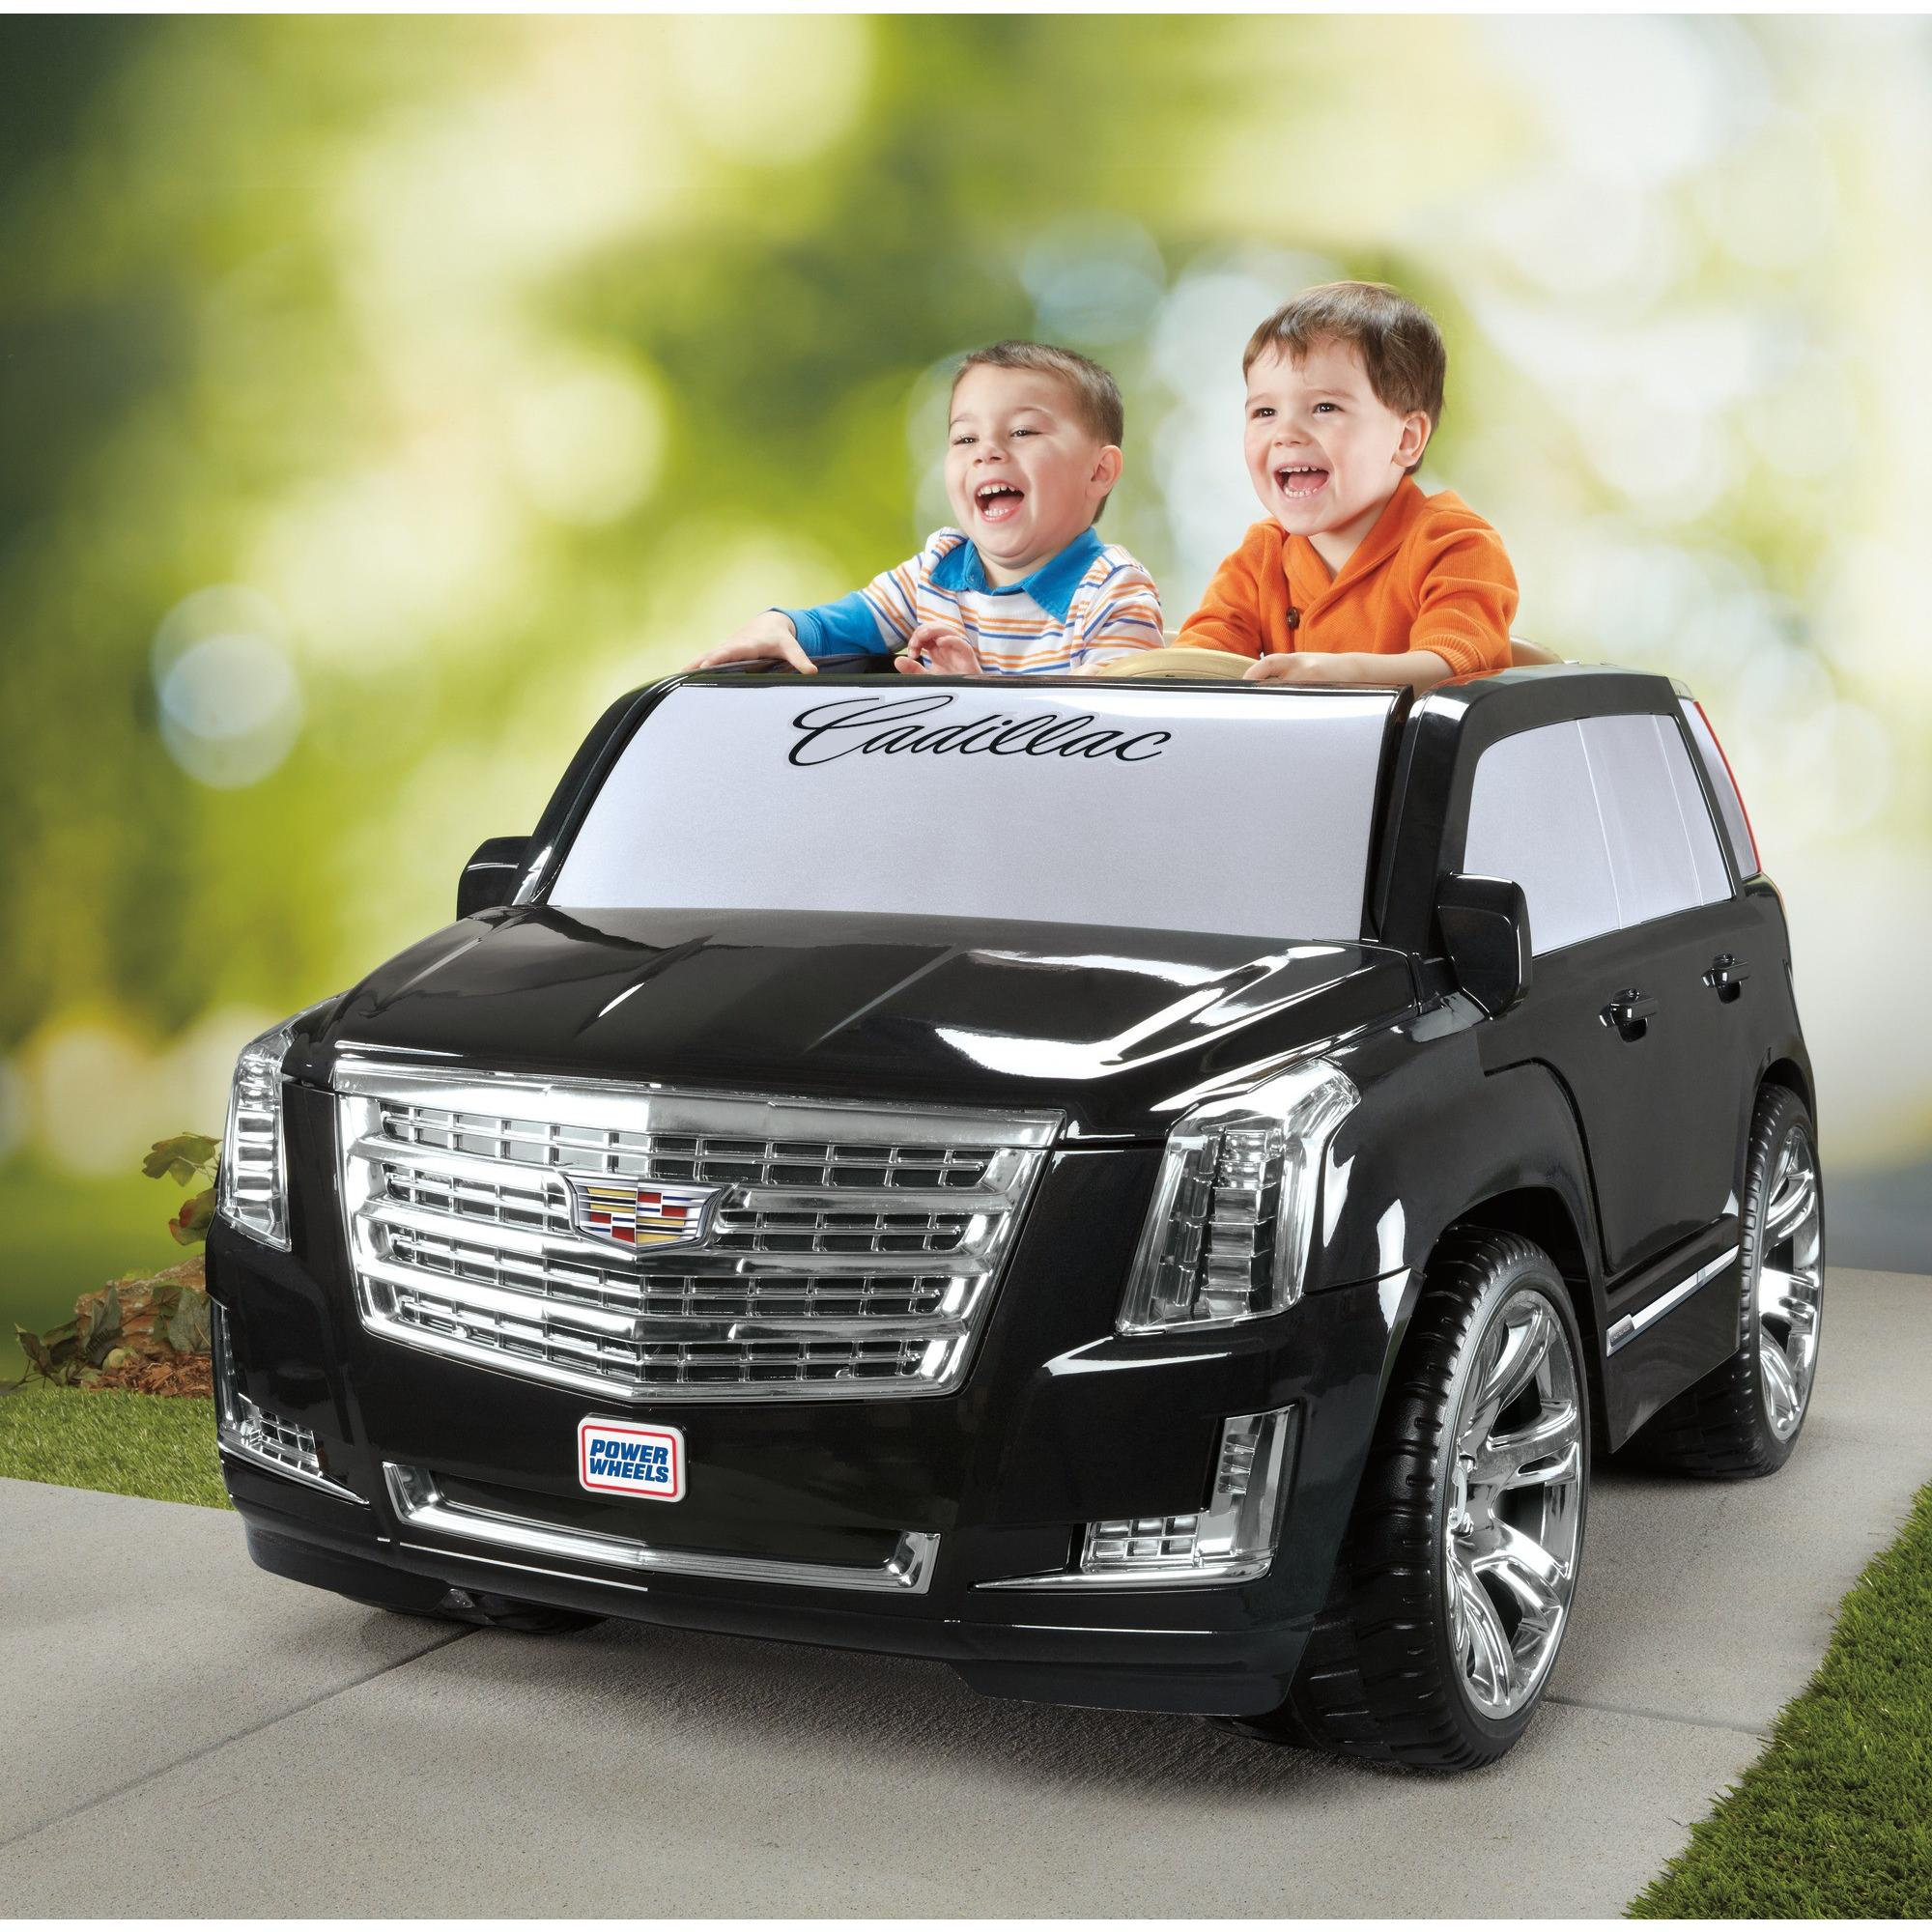 Power Wheels Cadillac Escalade Ride-On Vehicle by Fisher-Price